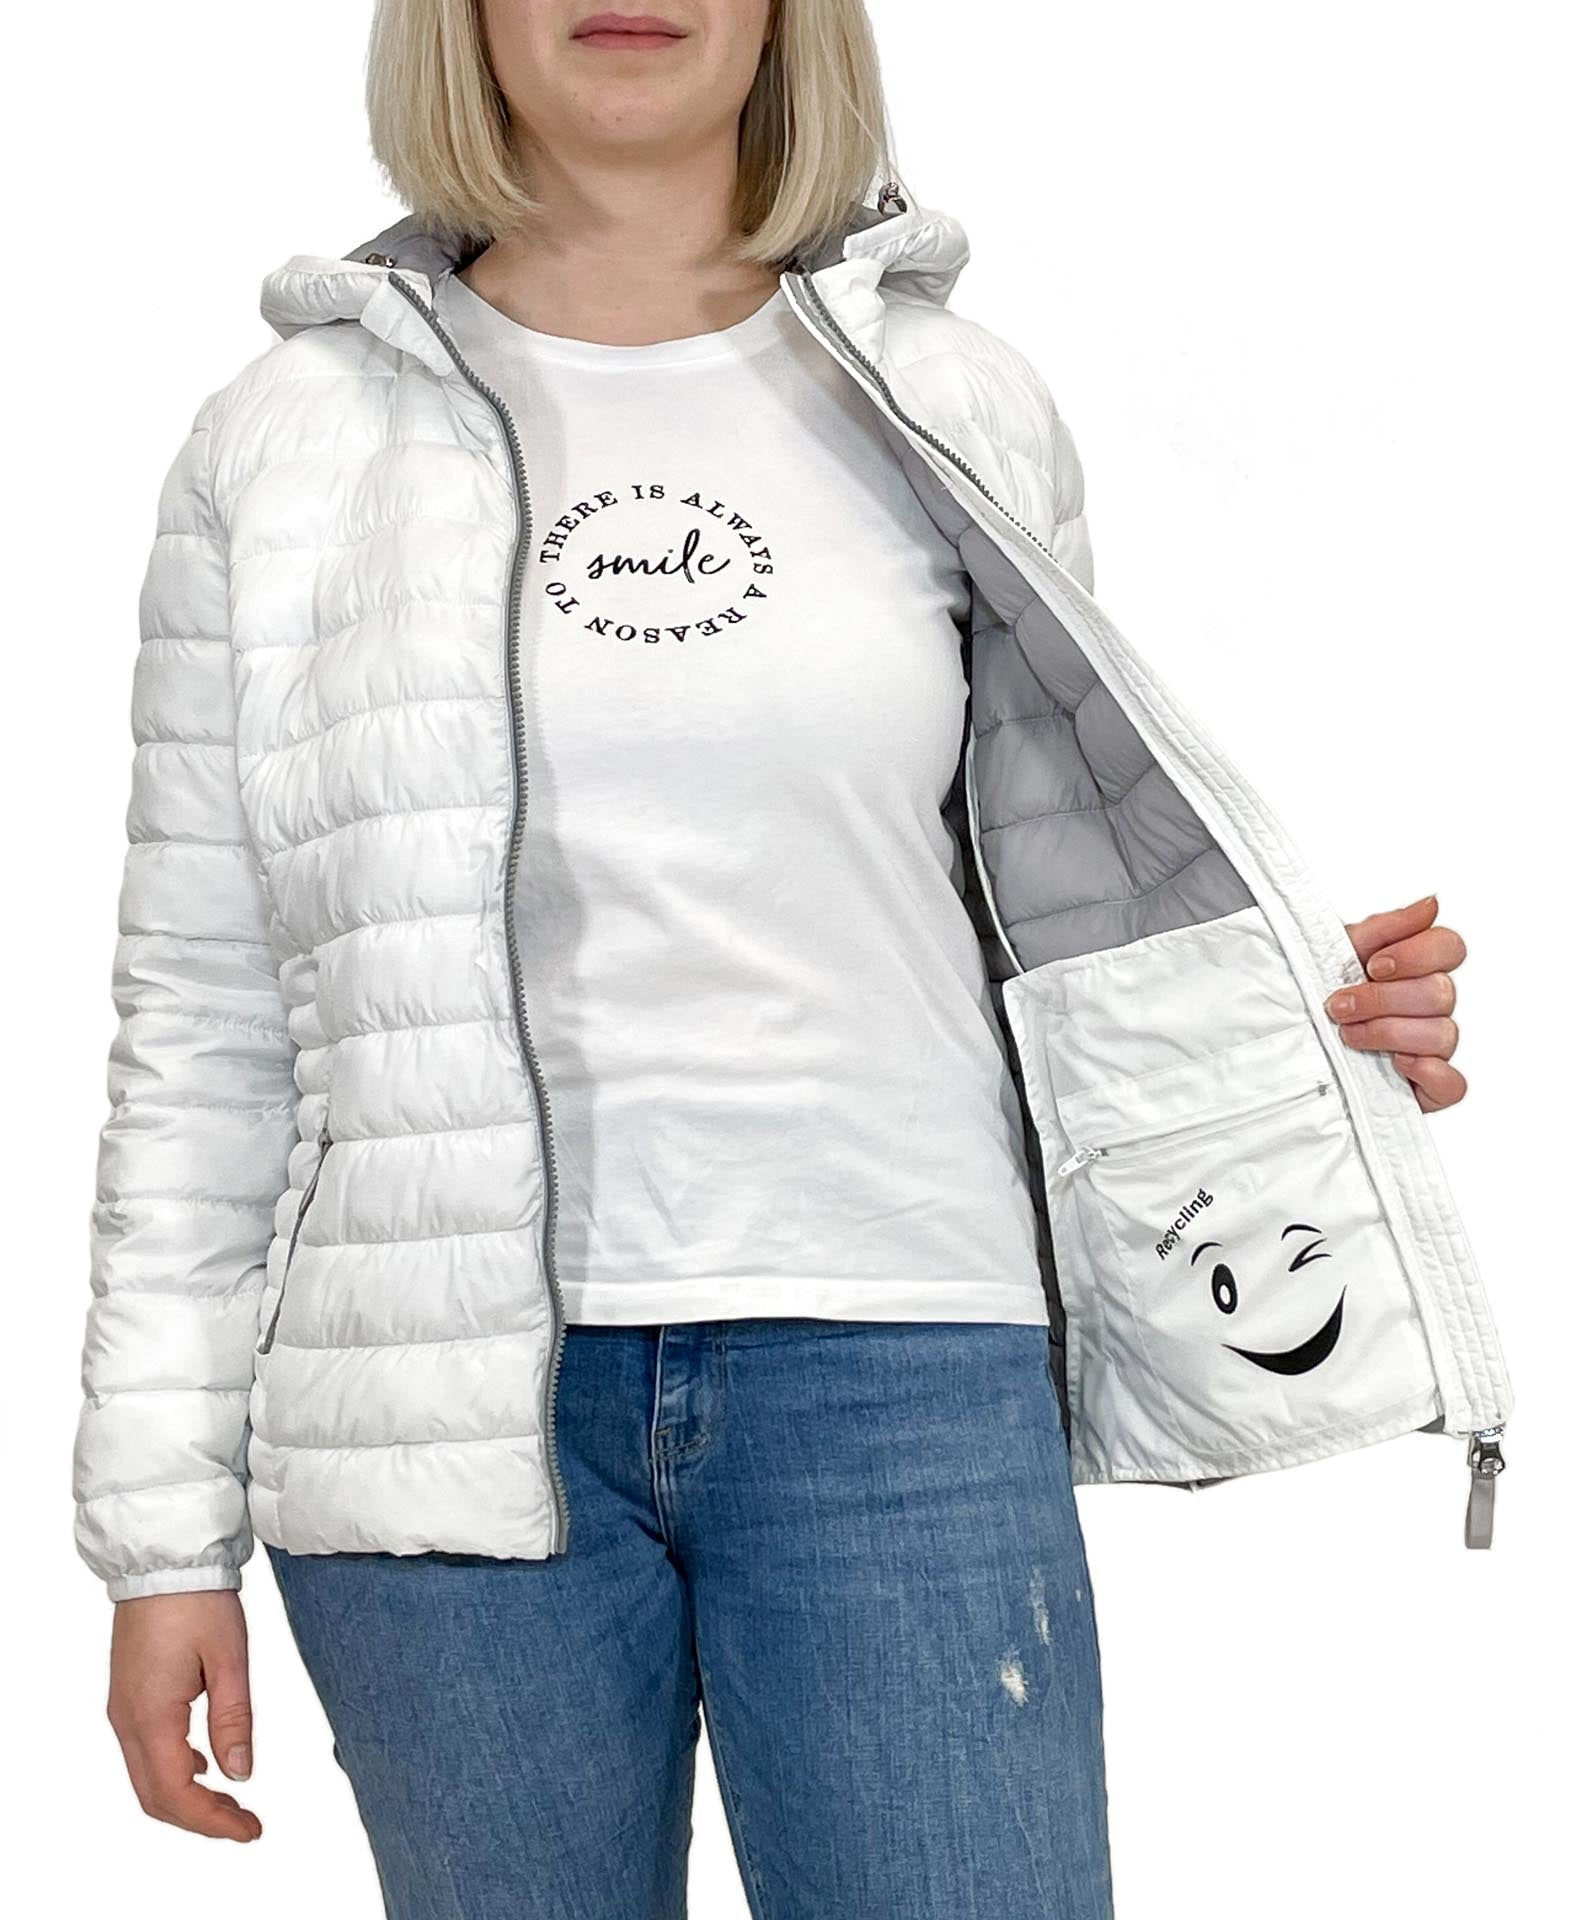 Steppjacke Recycling weiß